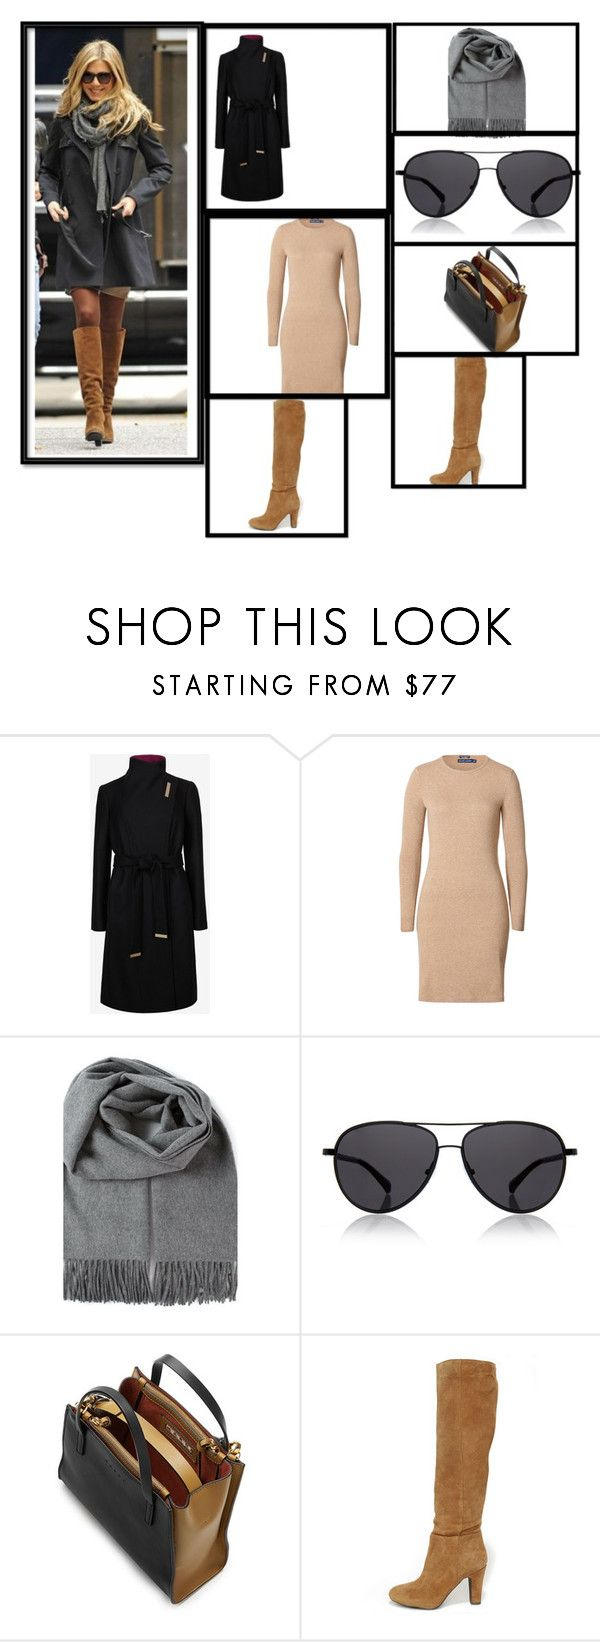 """Untitled #3112"" by mr-1 on Polyvore featuring Ted Baker, Polo Ralph Lauren, The Row, Marni, Jessica Simpson, women's clothing, women, female, woman and misses"